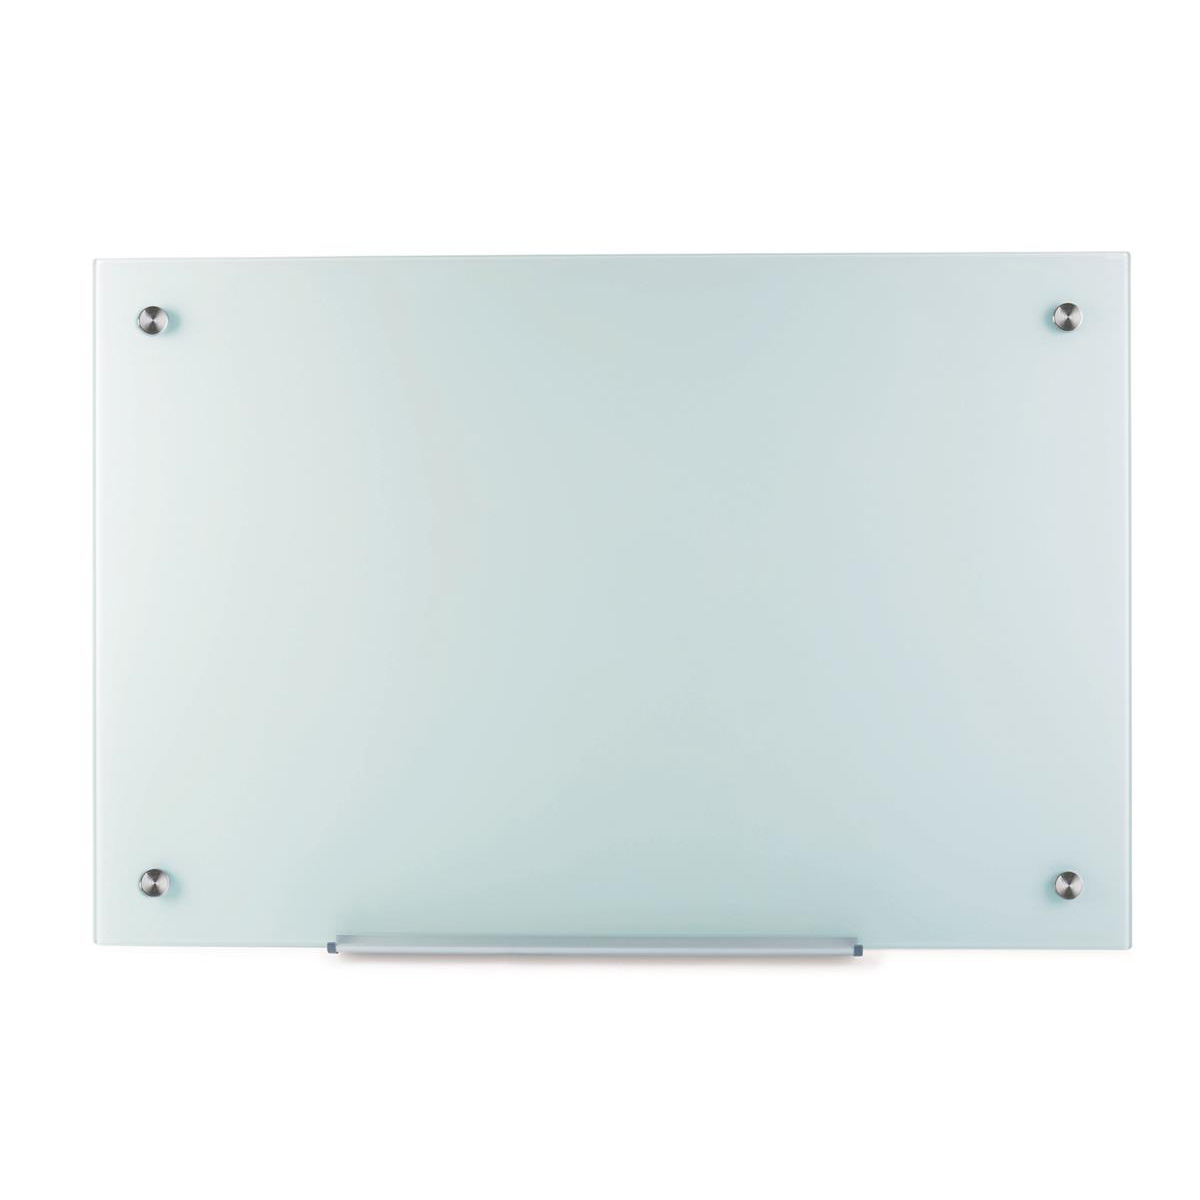 5 Star Office Glass Board Magnetic with Wall Fixings W1500xH1000mm White